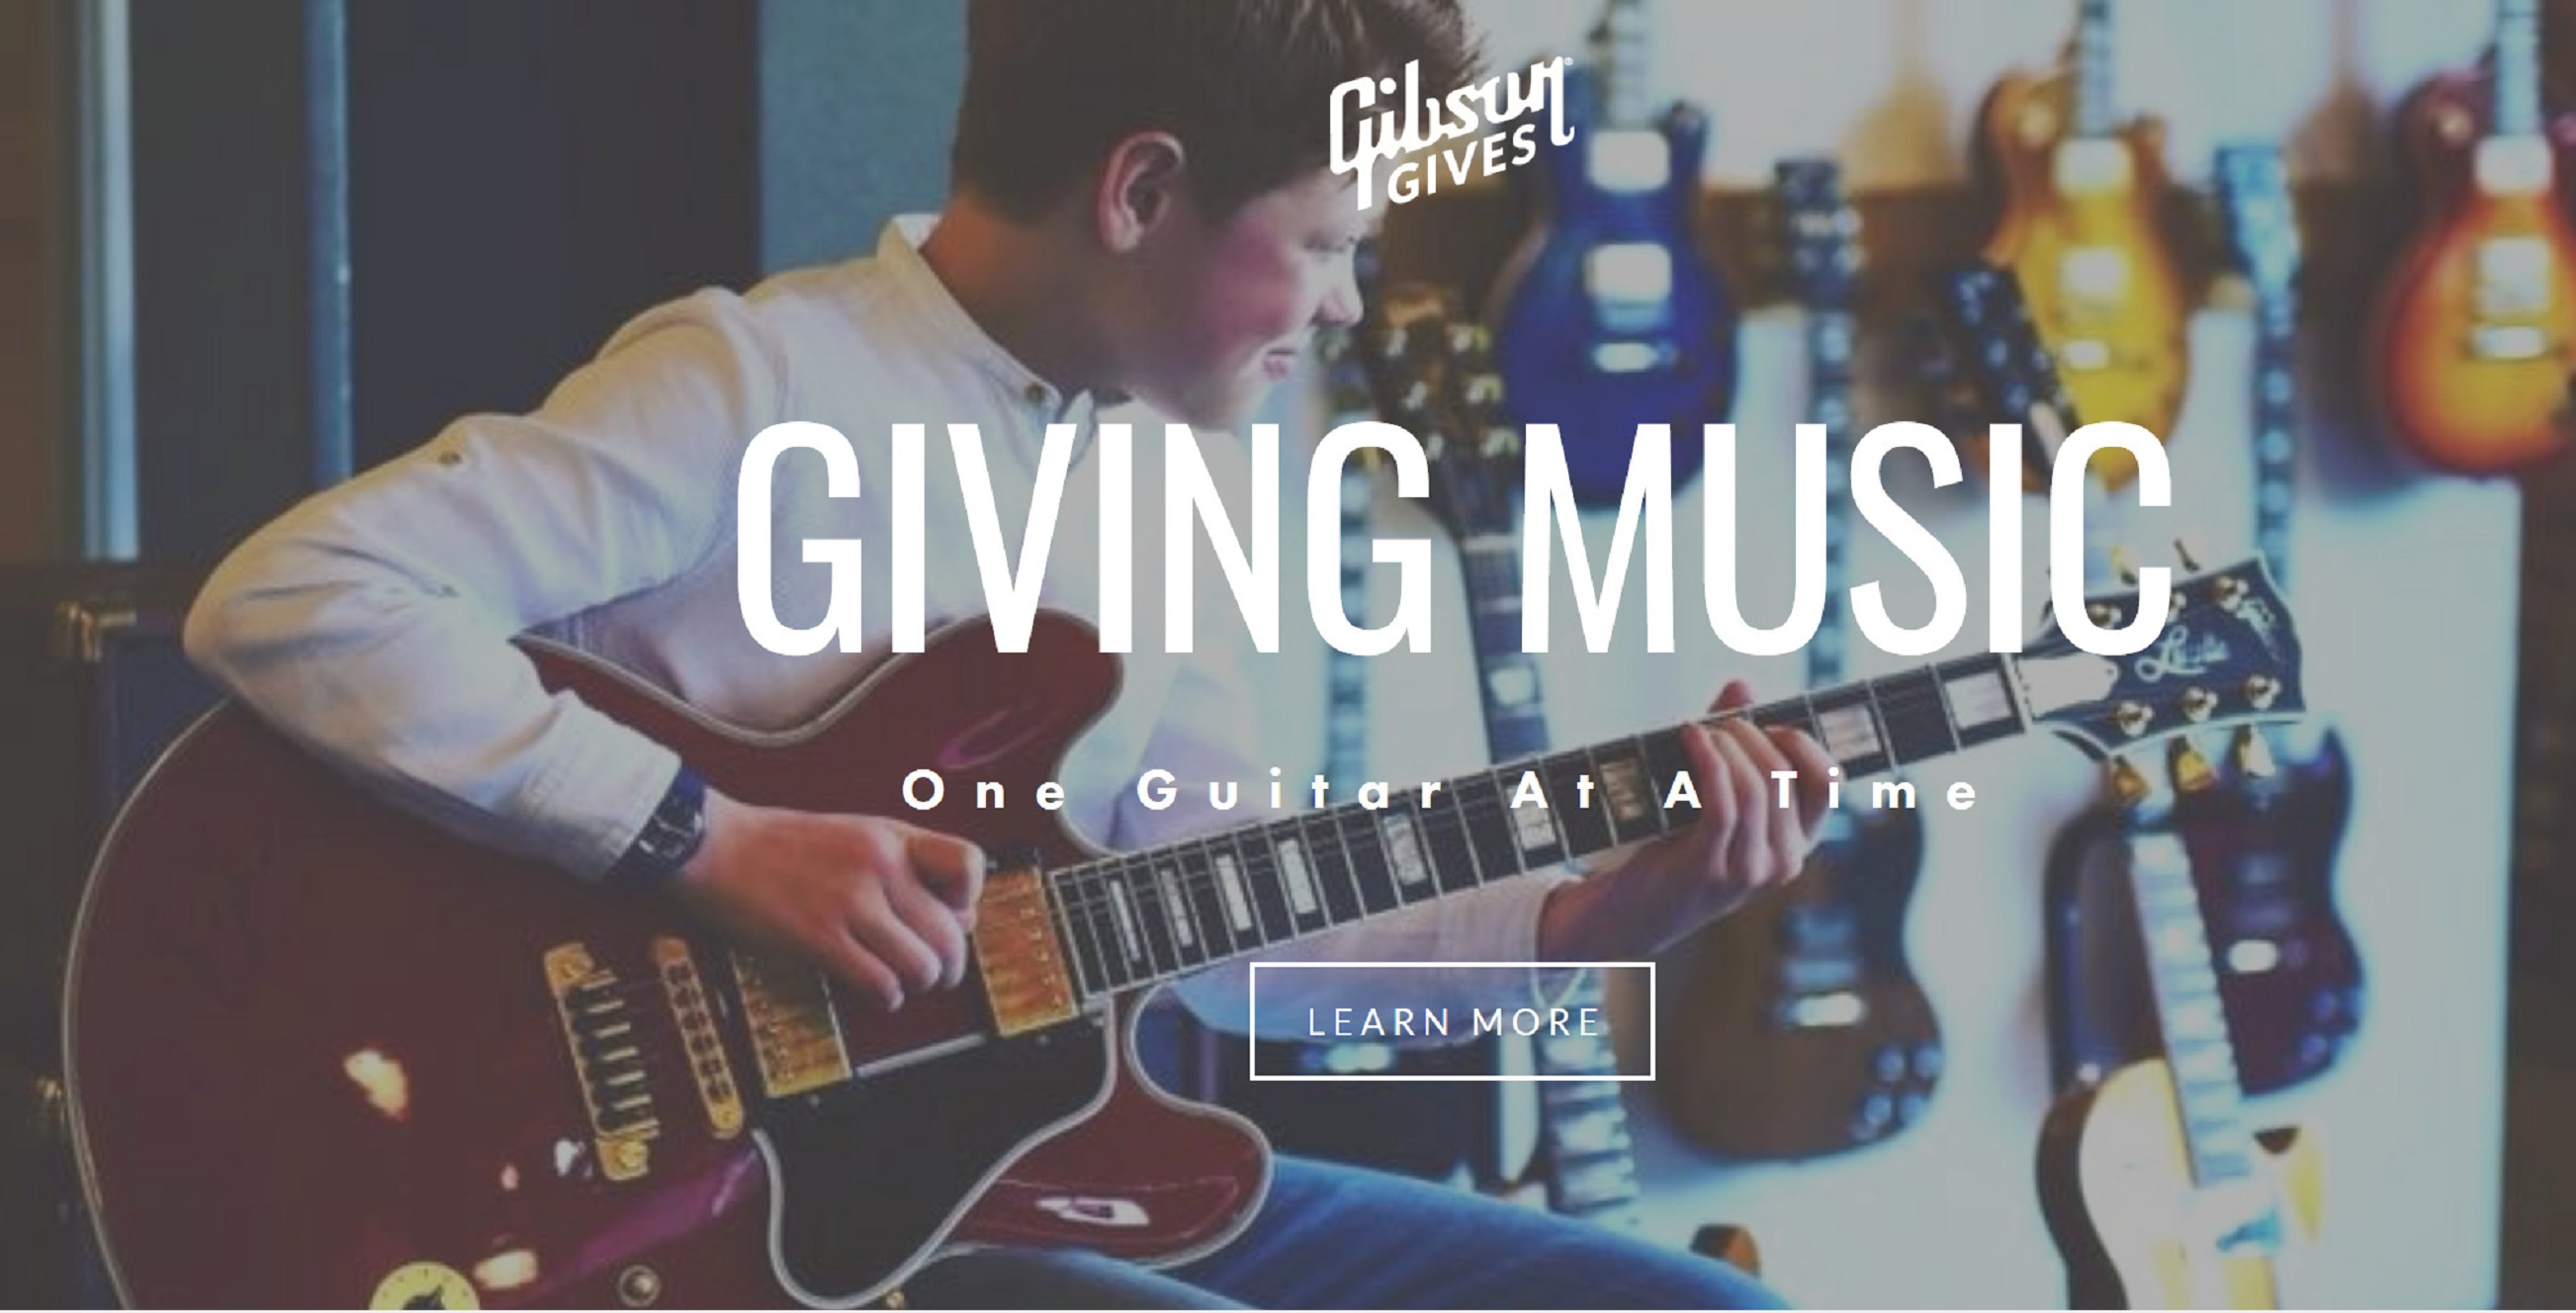 Gibson Gives Comes Together With John Lennon Songwriting Contest